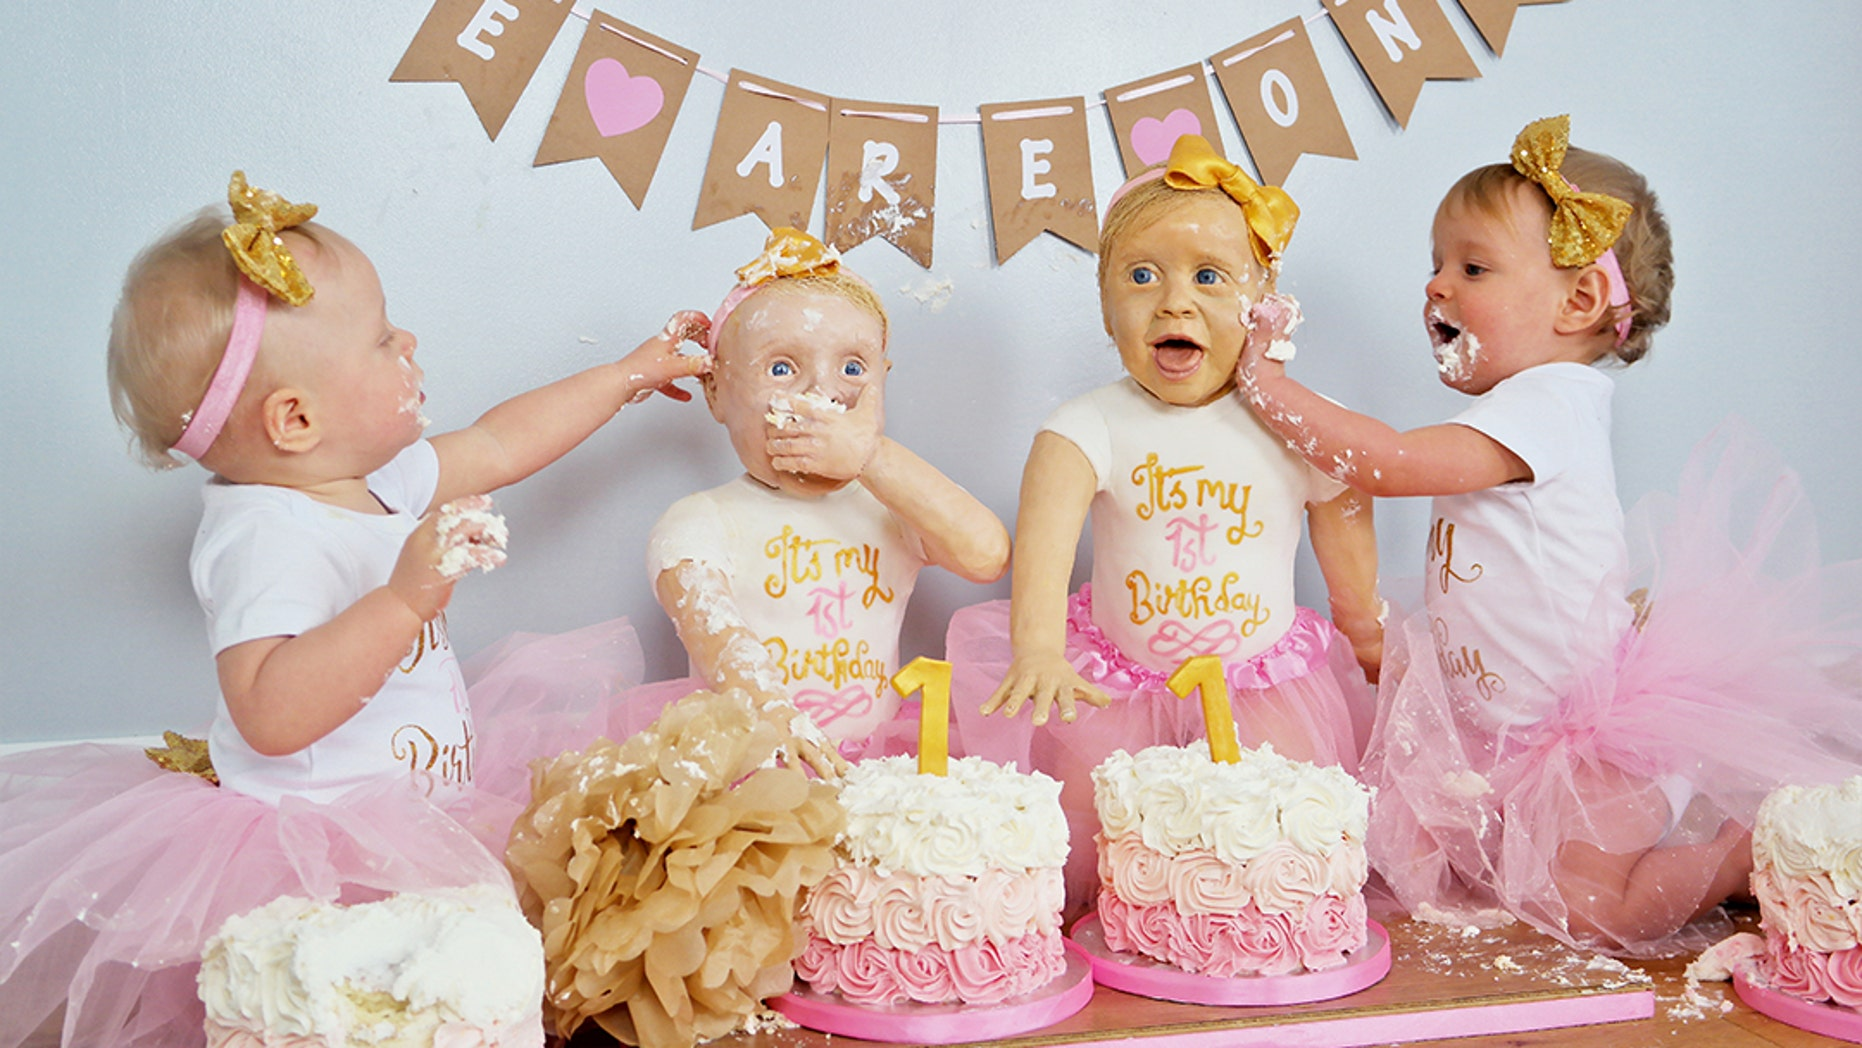 Mom Lara Mason spent more than 100 hours constructing the edible treats of little Lily and Lyla.